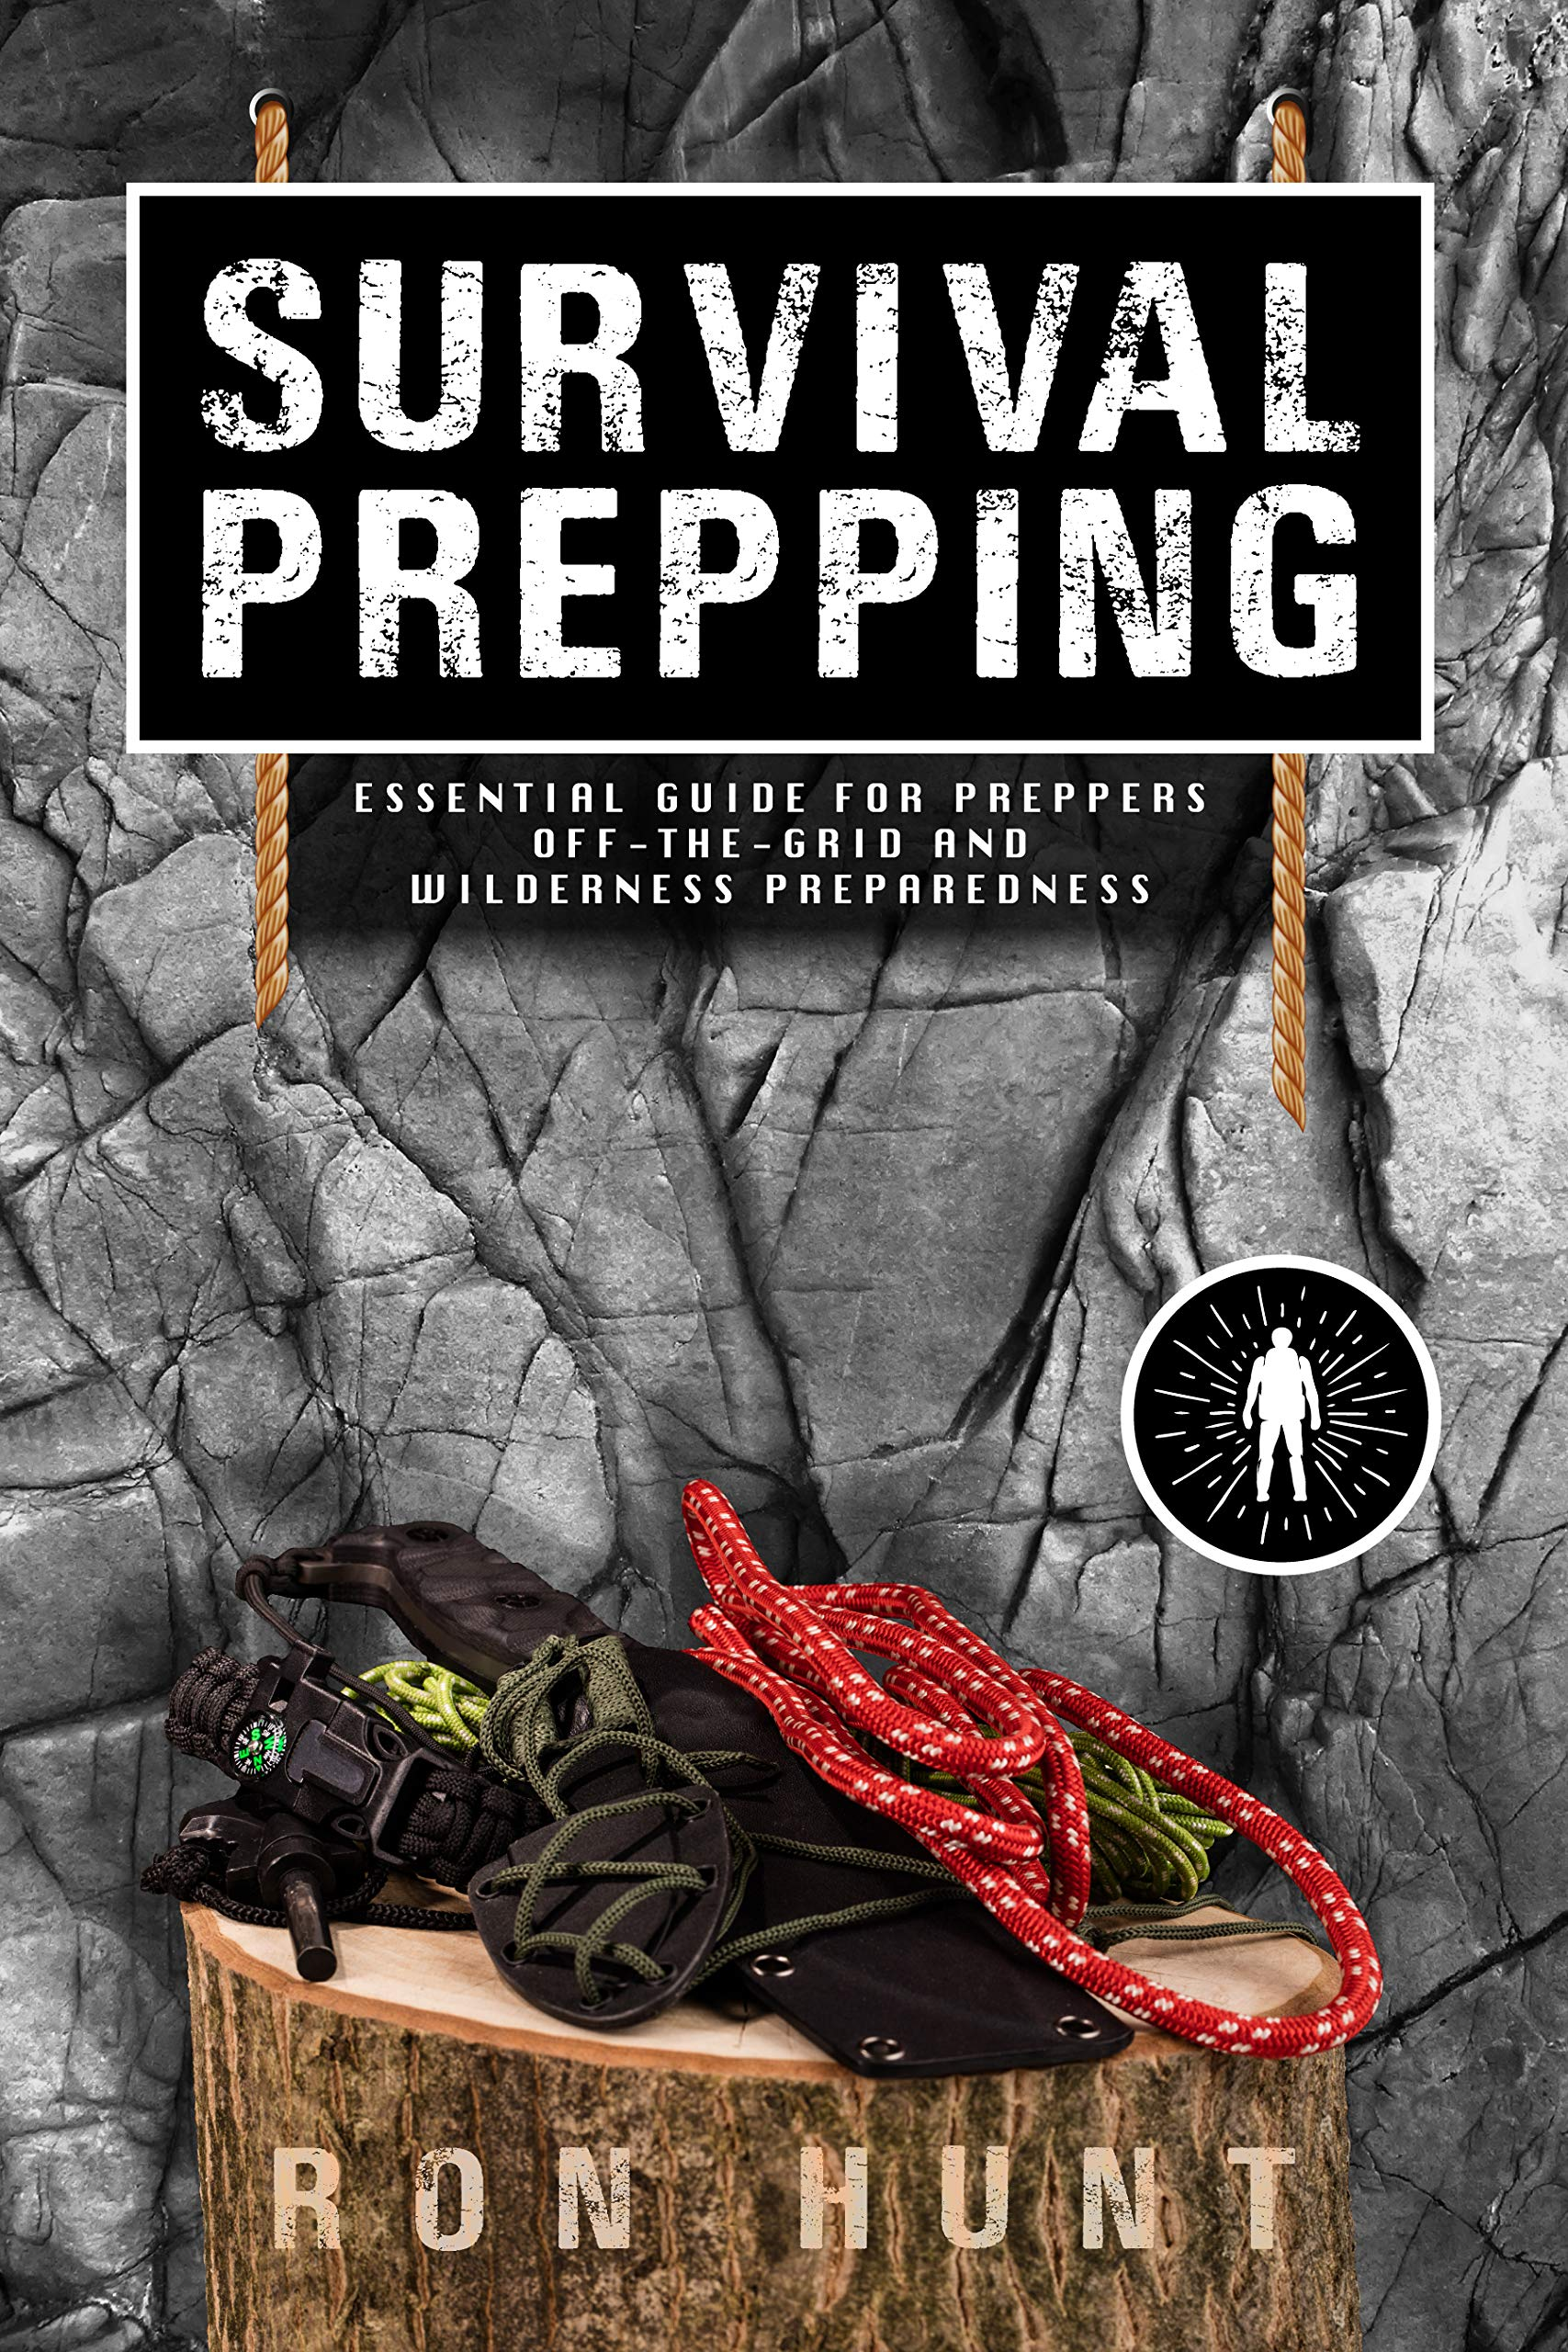 Survival Prepping: Essential Guide for Preppers! Off-the-grid and Wilderness Preparedness